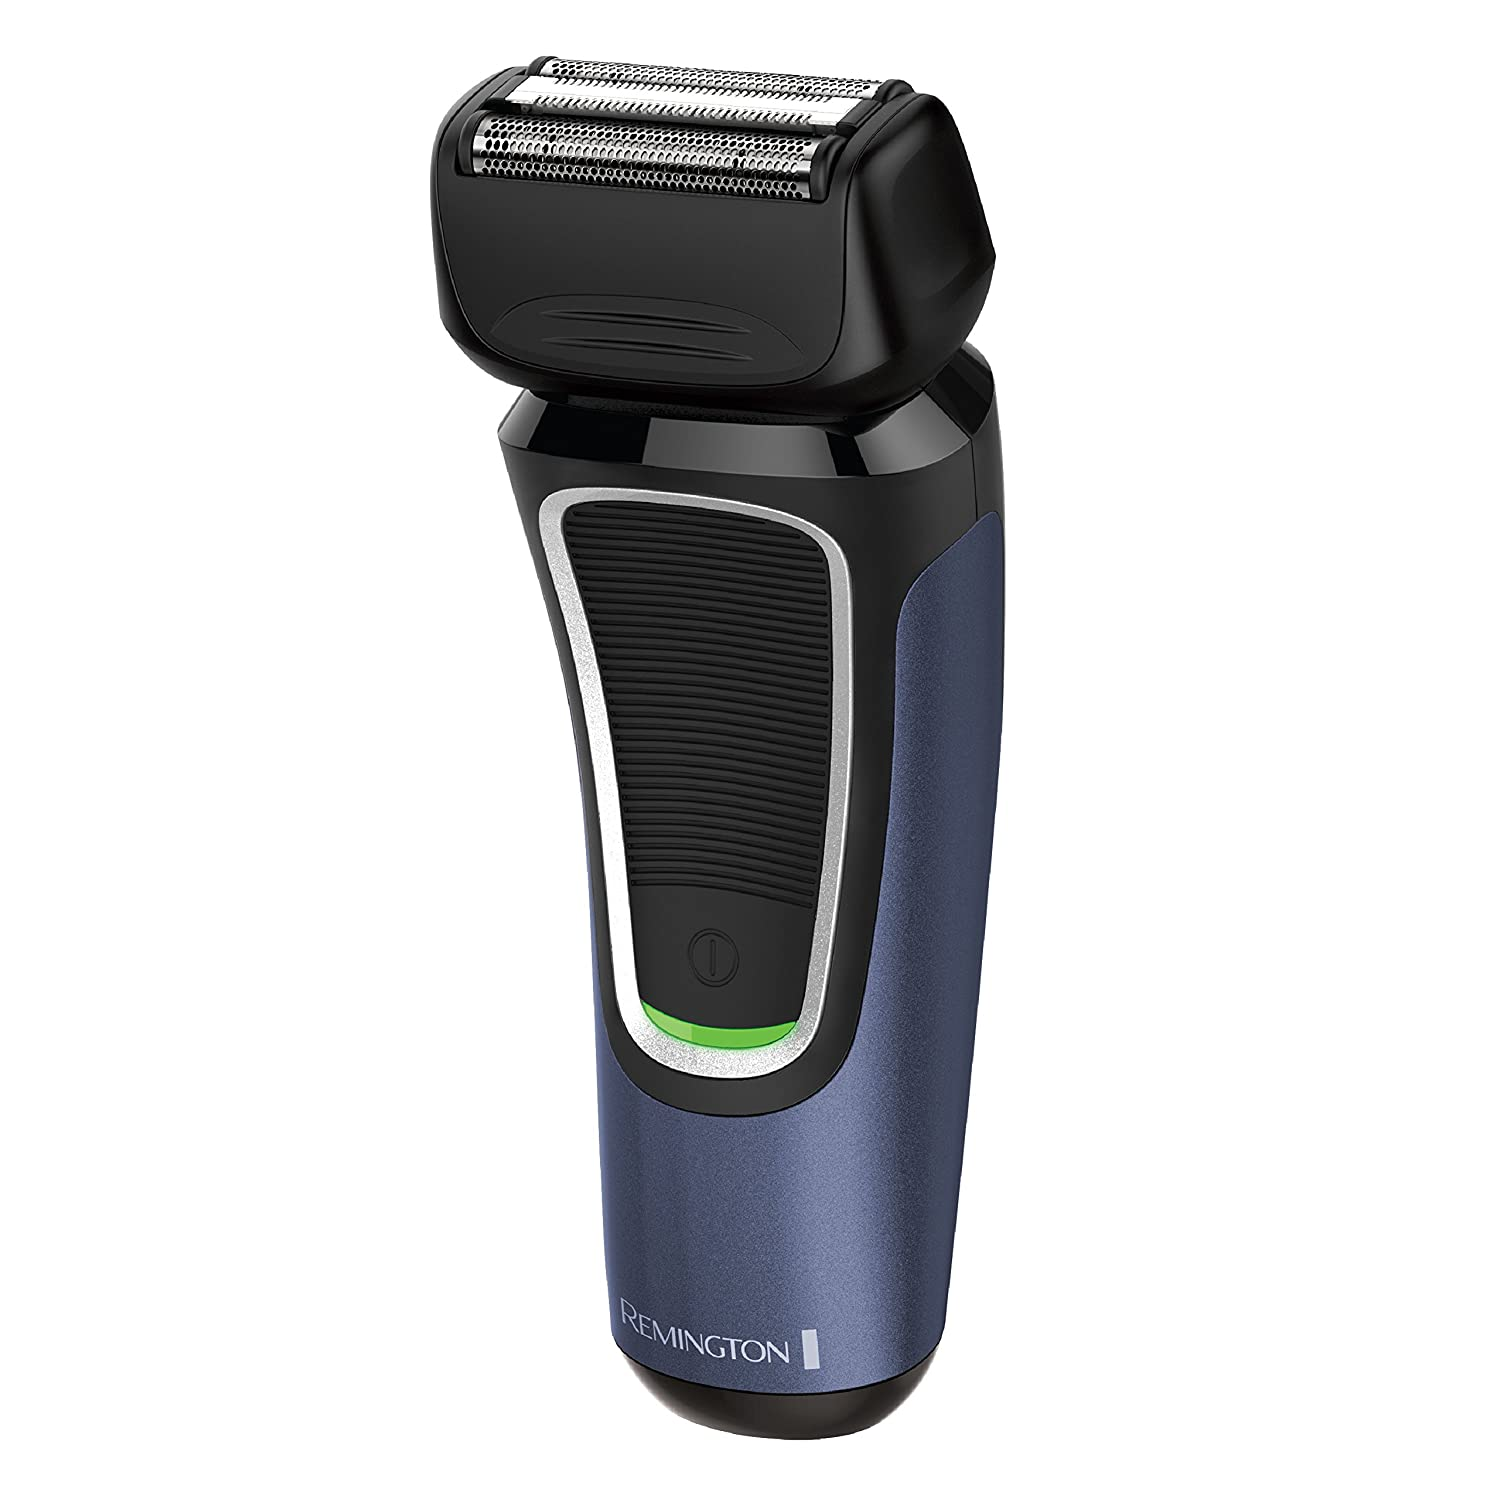 Remington PF7500 F5 Comfort Series Foil Shaver, Men s Electric Razor, Electric Shaver